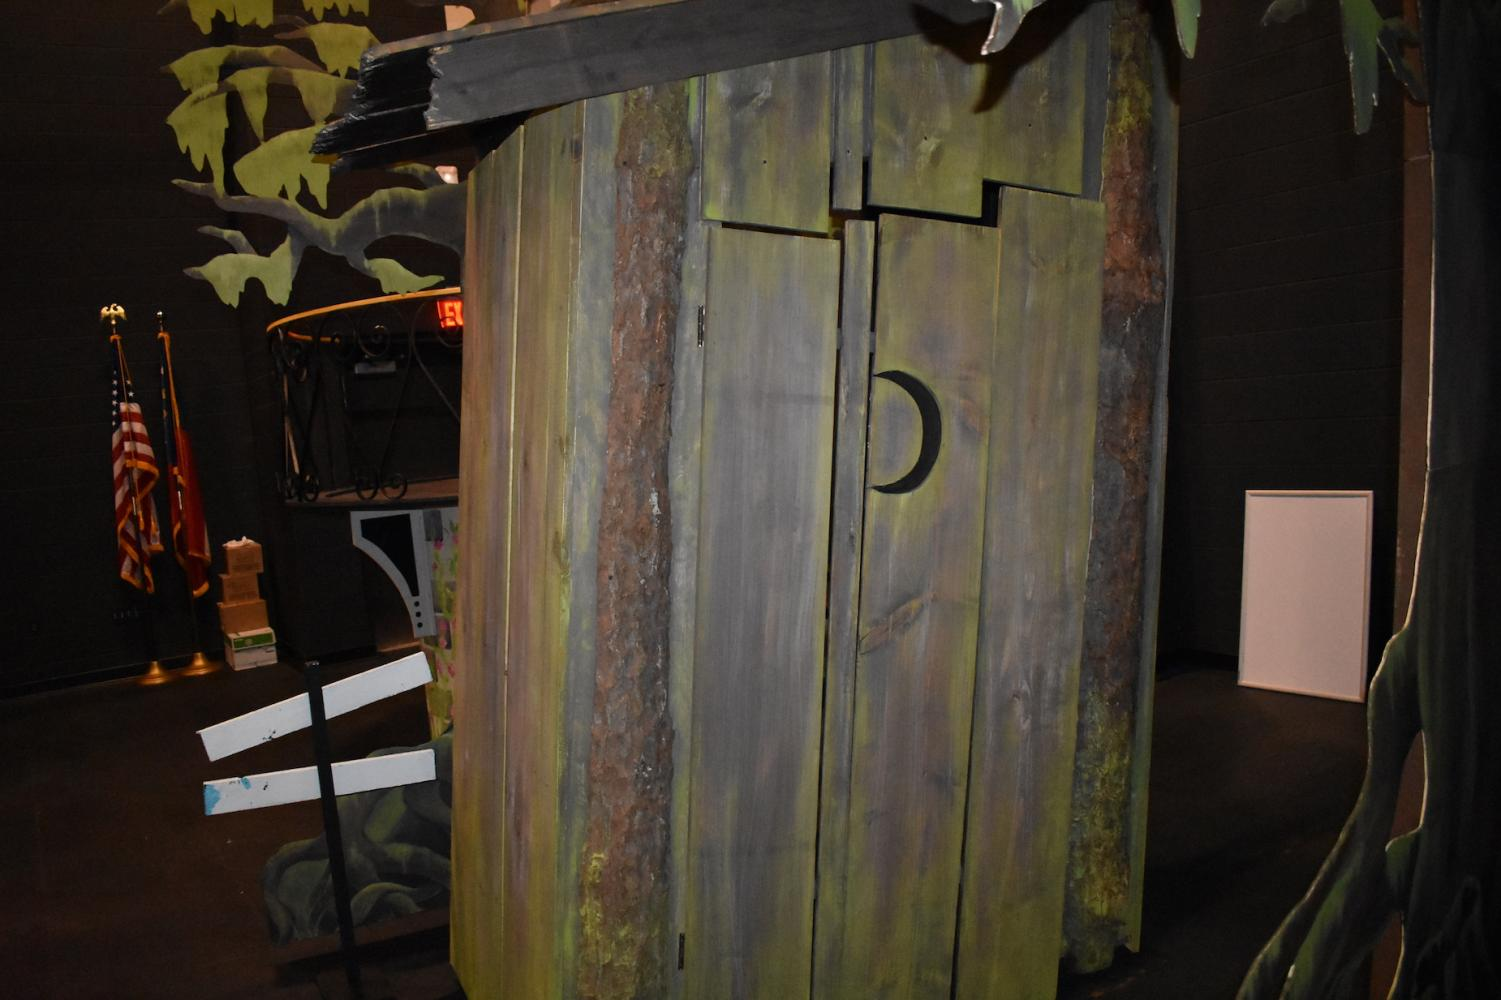 Shrek's hut, used for the NC Theatre Department's upcoming performance of Shrek The Musical, lays in the back of the stage. As the main set for the play, the majority of the student performers will play out their roles around this locale. First performed in 2008, seven years after the animated movie released, Shrek The Musical retells the events of the film (and the 1990 book it adapts), but with additional backstory for Shrek and Fiona. The NC production will essentially serve as a retelling of the original, with no notable difference.